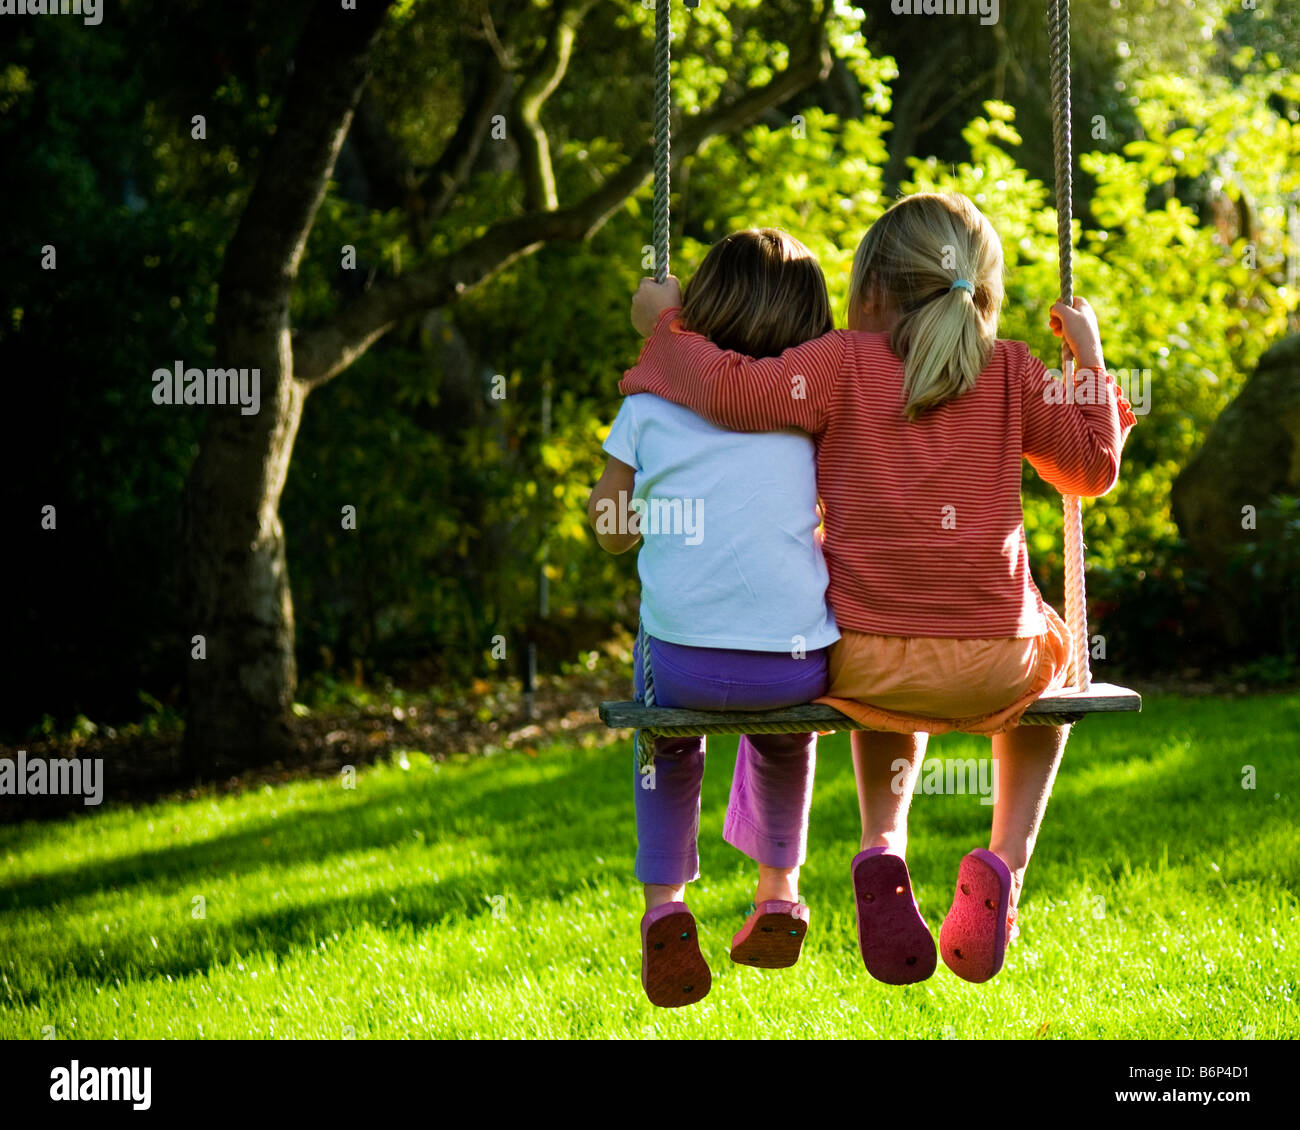 Two girls, 3-6 years, swinging in a verdant back yard. - Stock Image